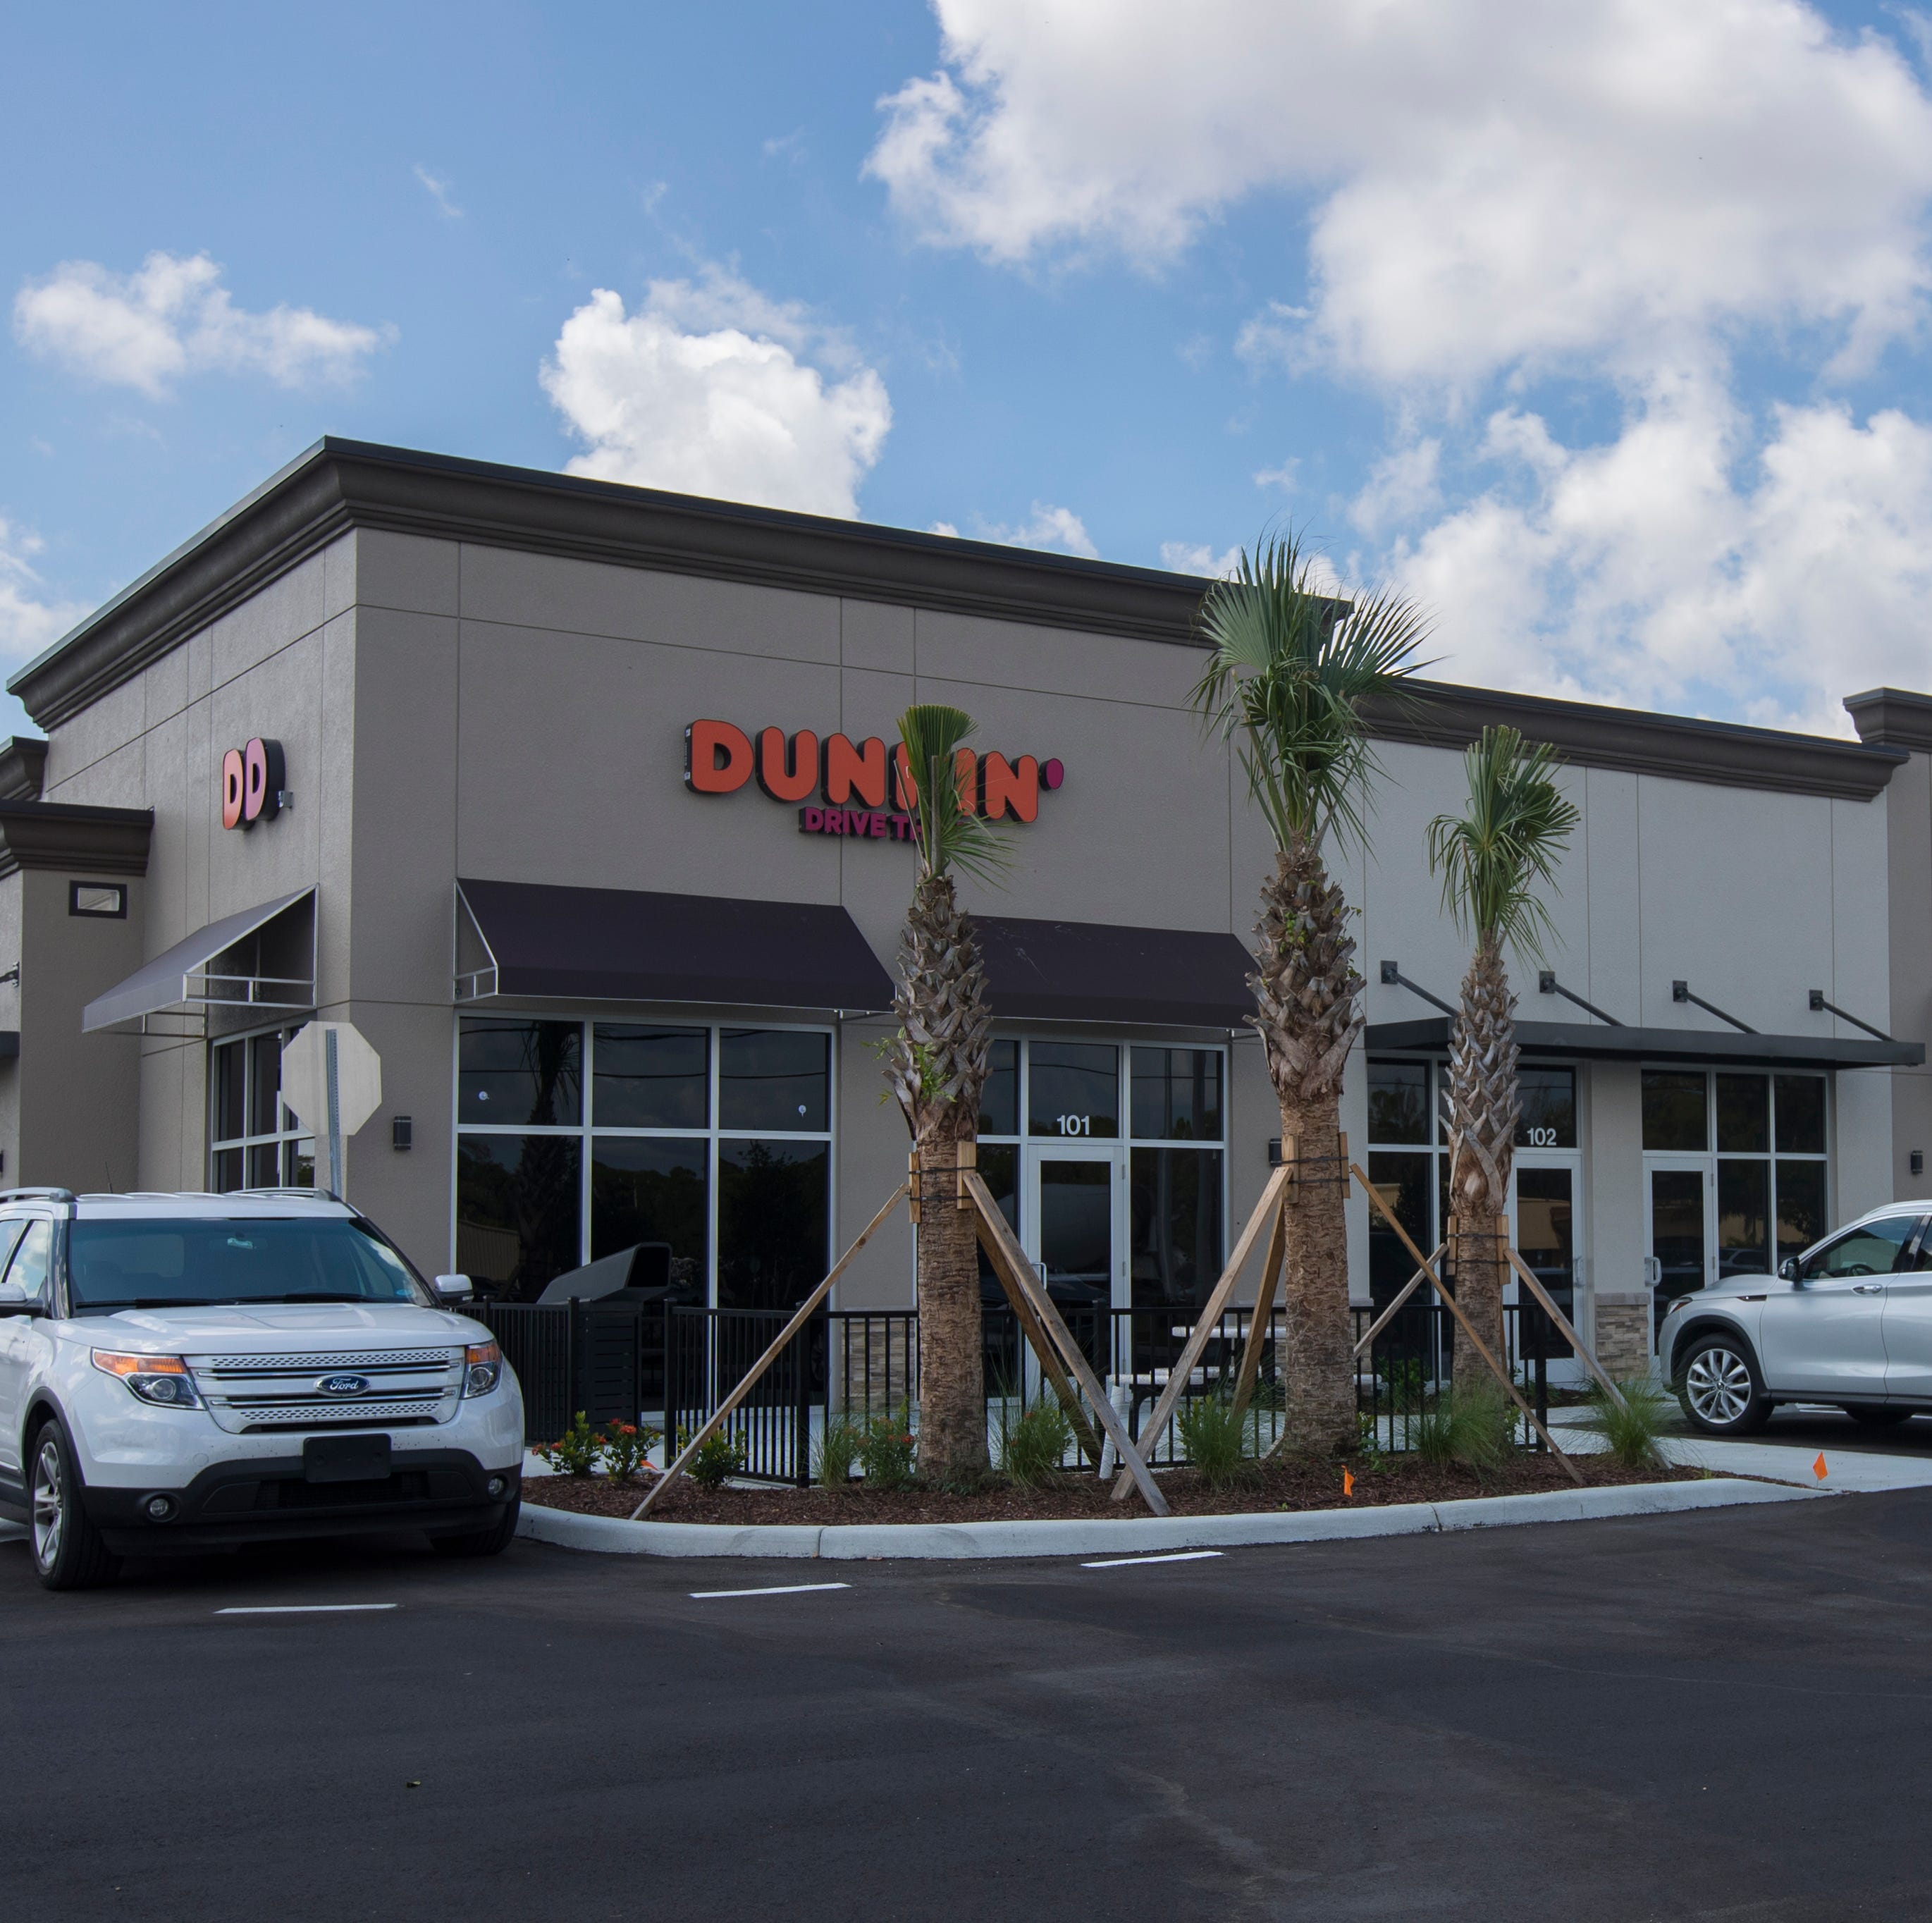 In the Know: Dunkin' dropping 'donuts' from name, surges in SWFL